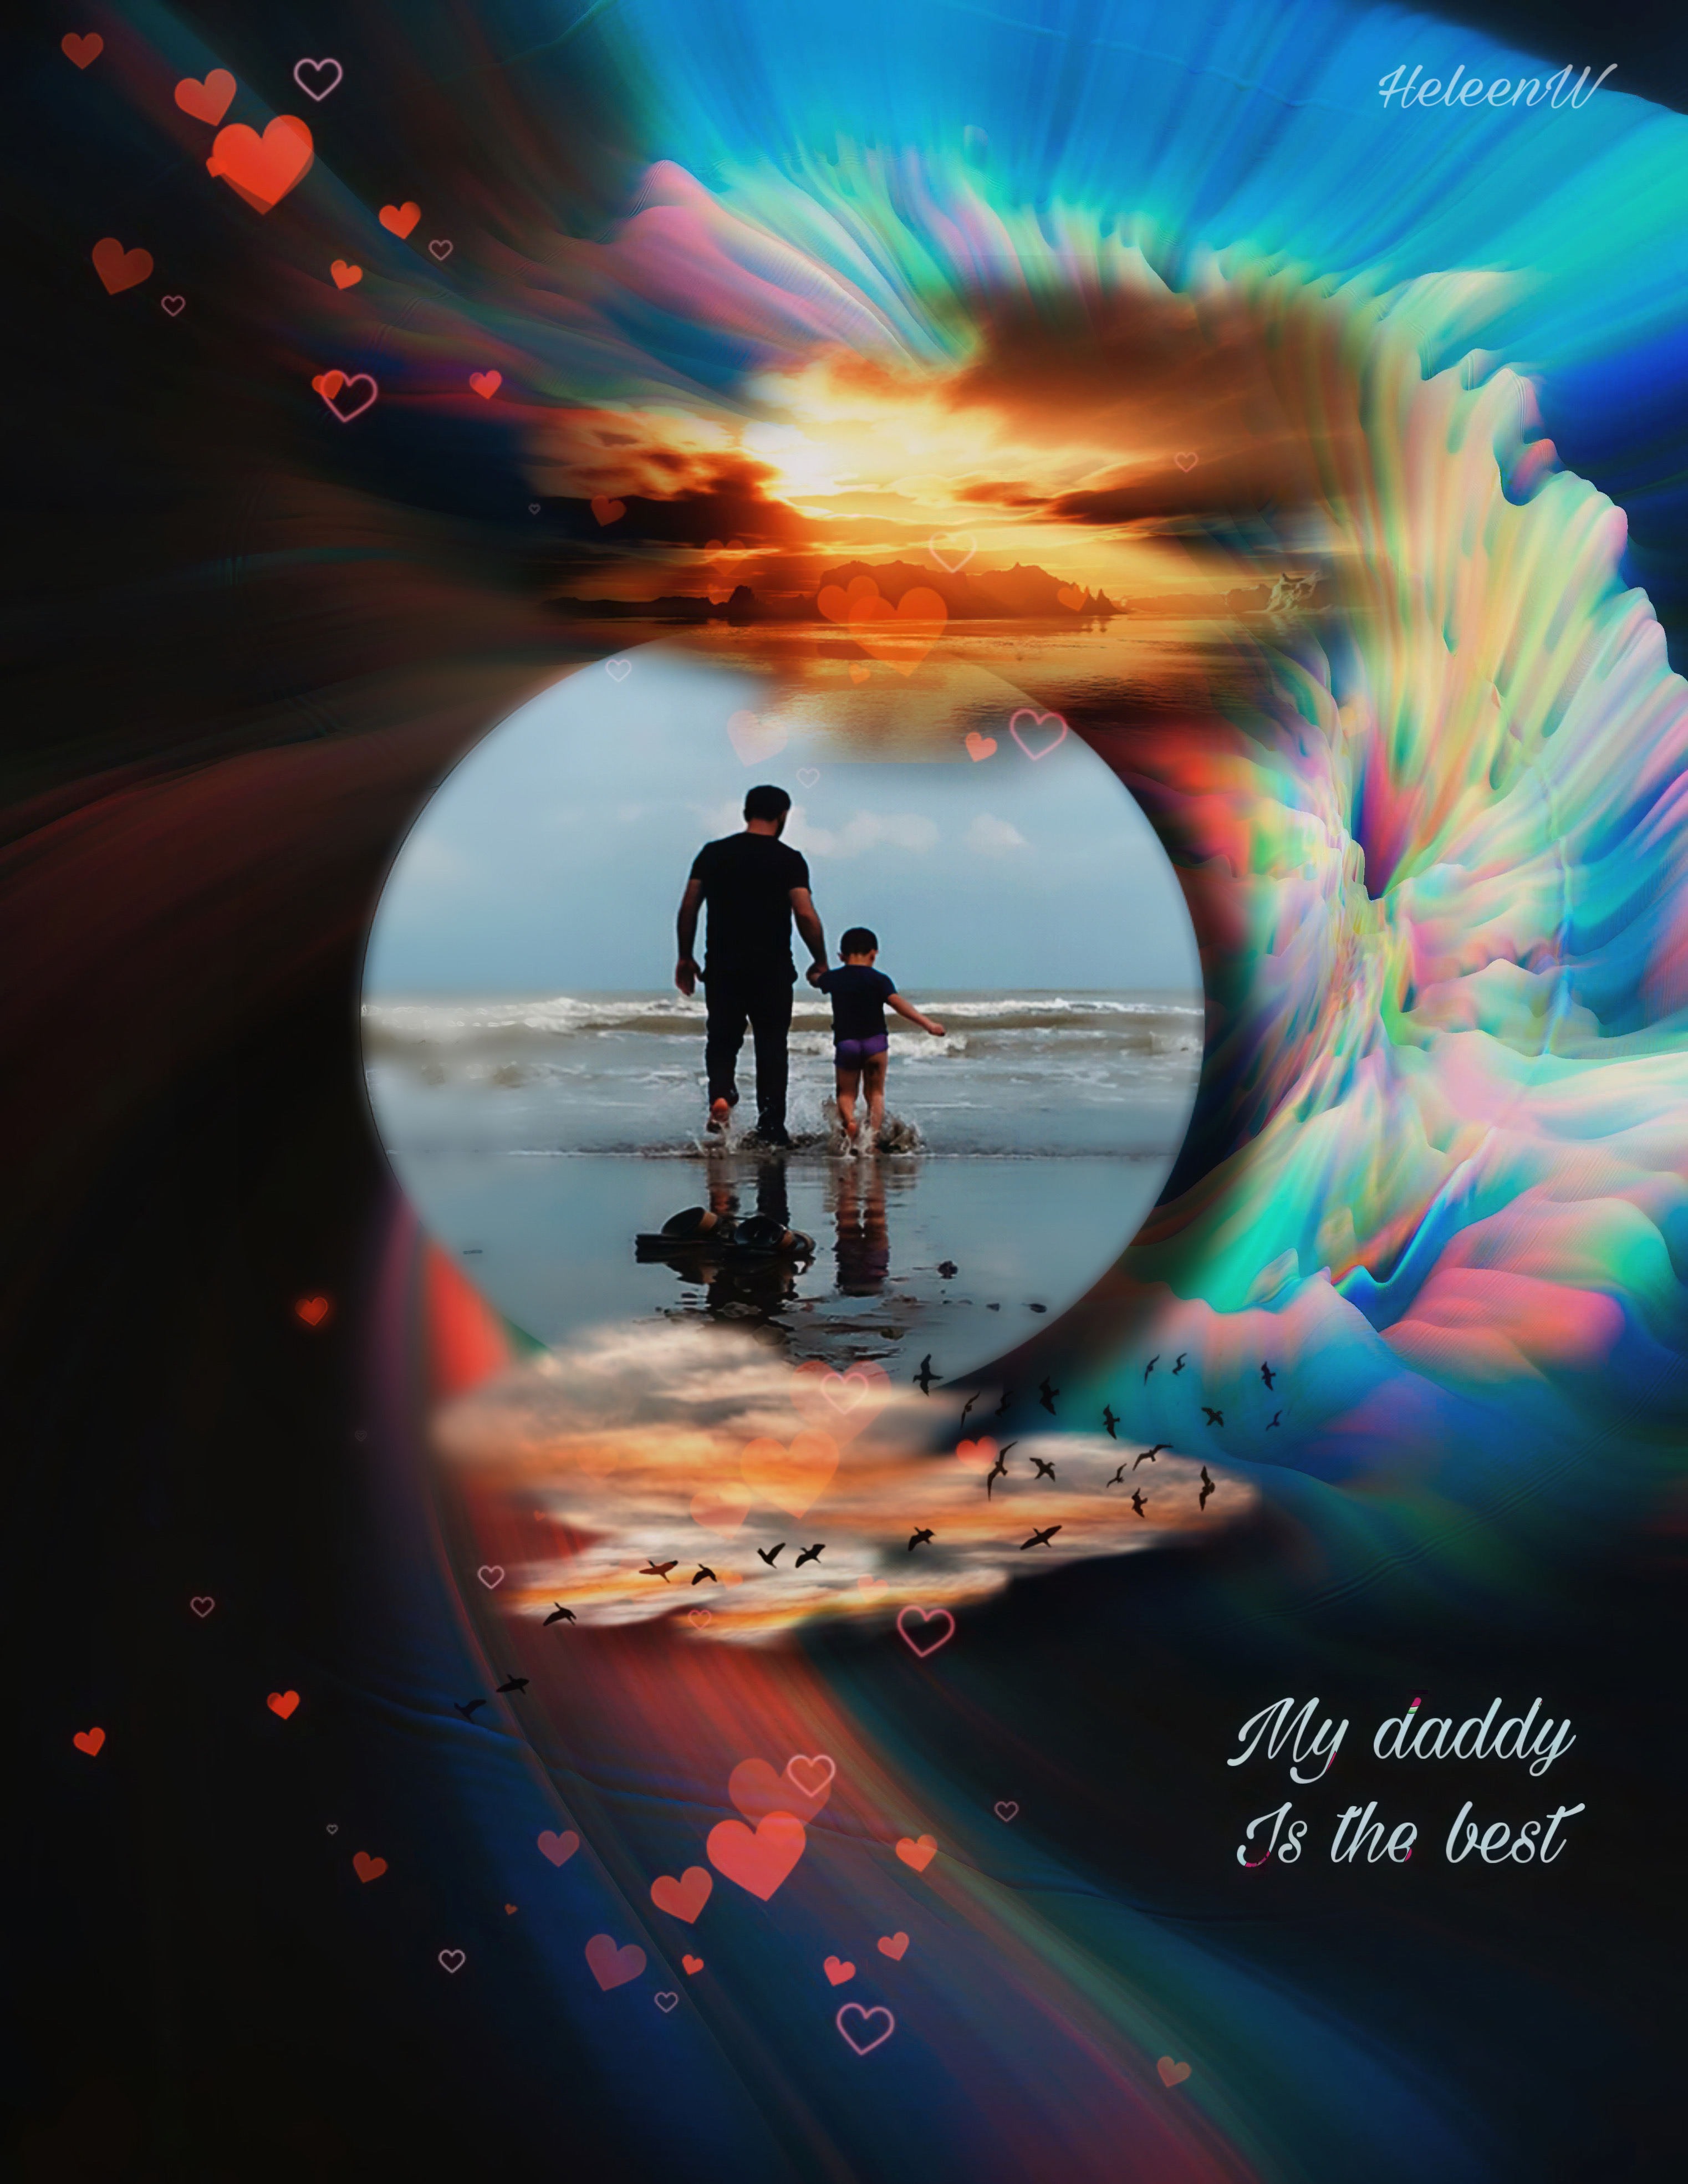 #fathersday #fantasy #imagination #dad #daddy #littlechild #walking #ocean #colorful #madewithpicsart #picsarttools #interesting #nature #myedt #myart #mys